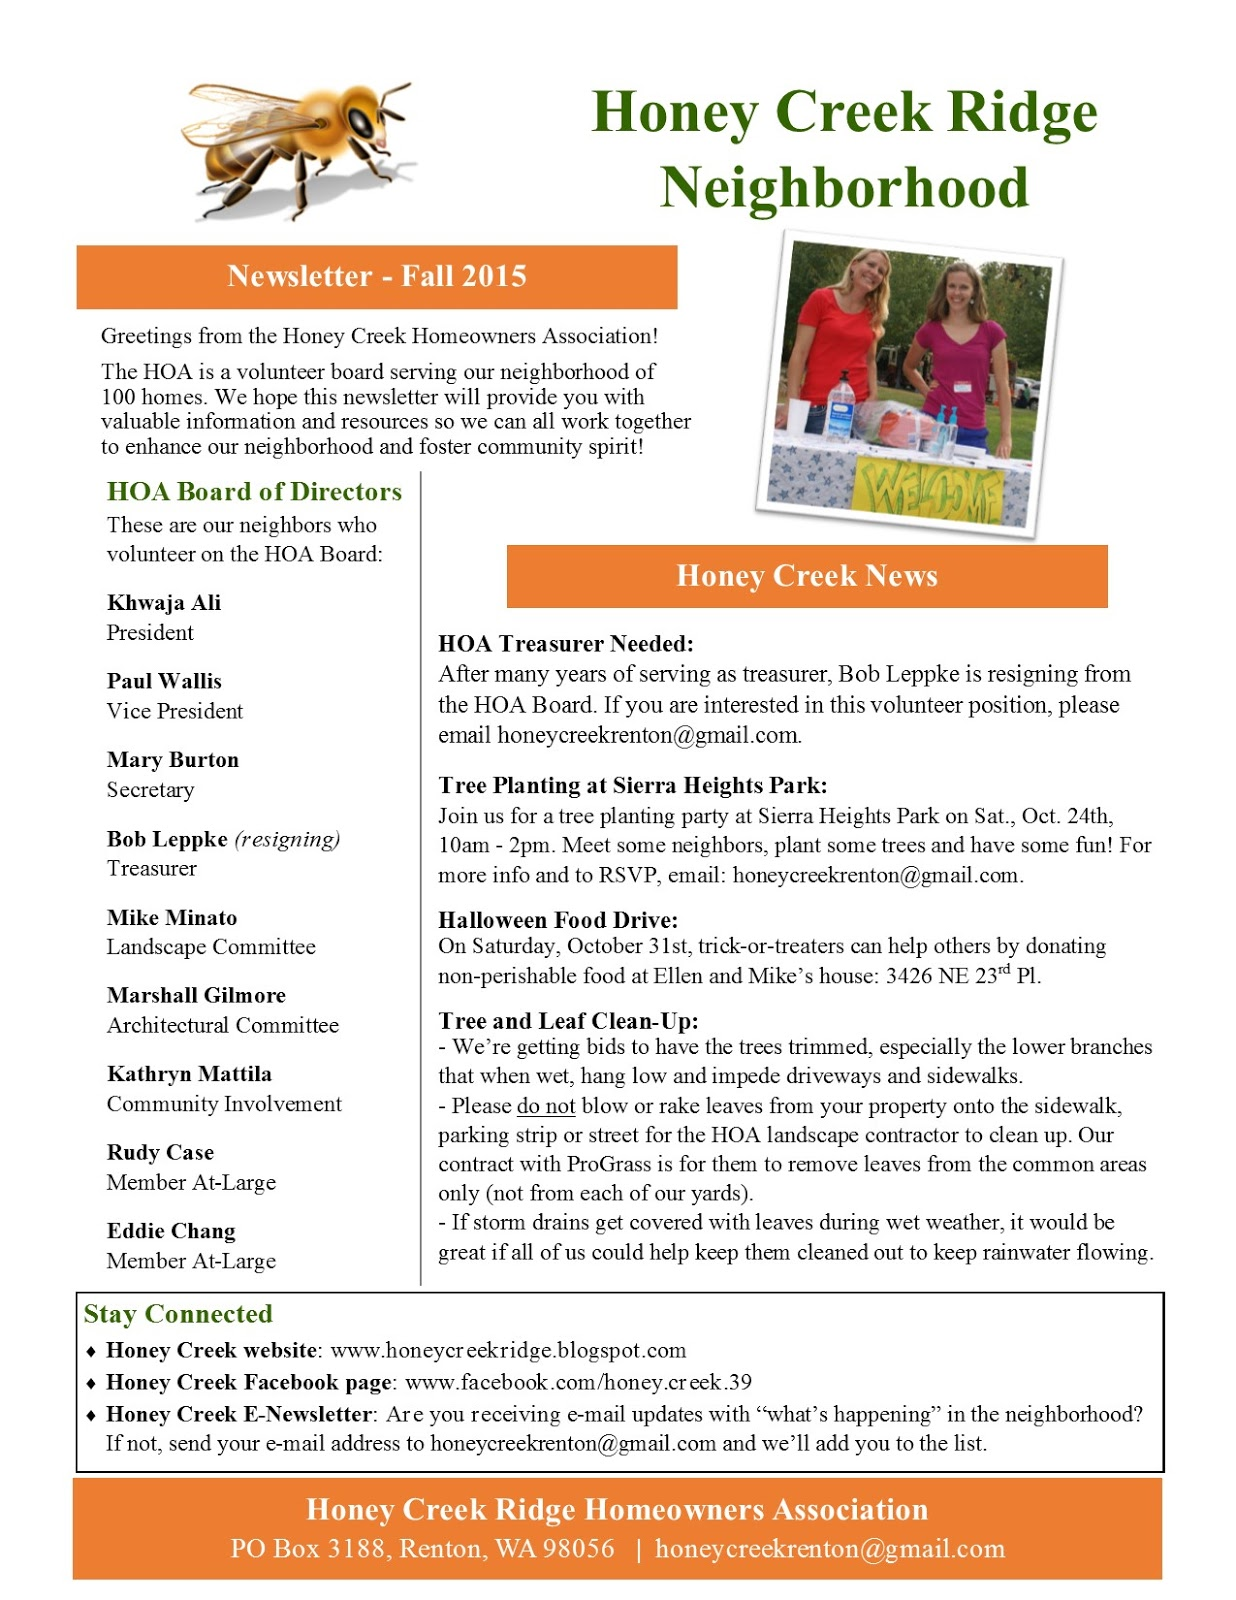 Honey Creek Ridge: Newsletters